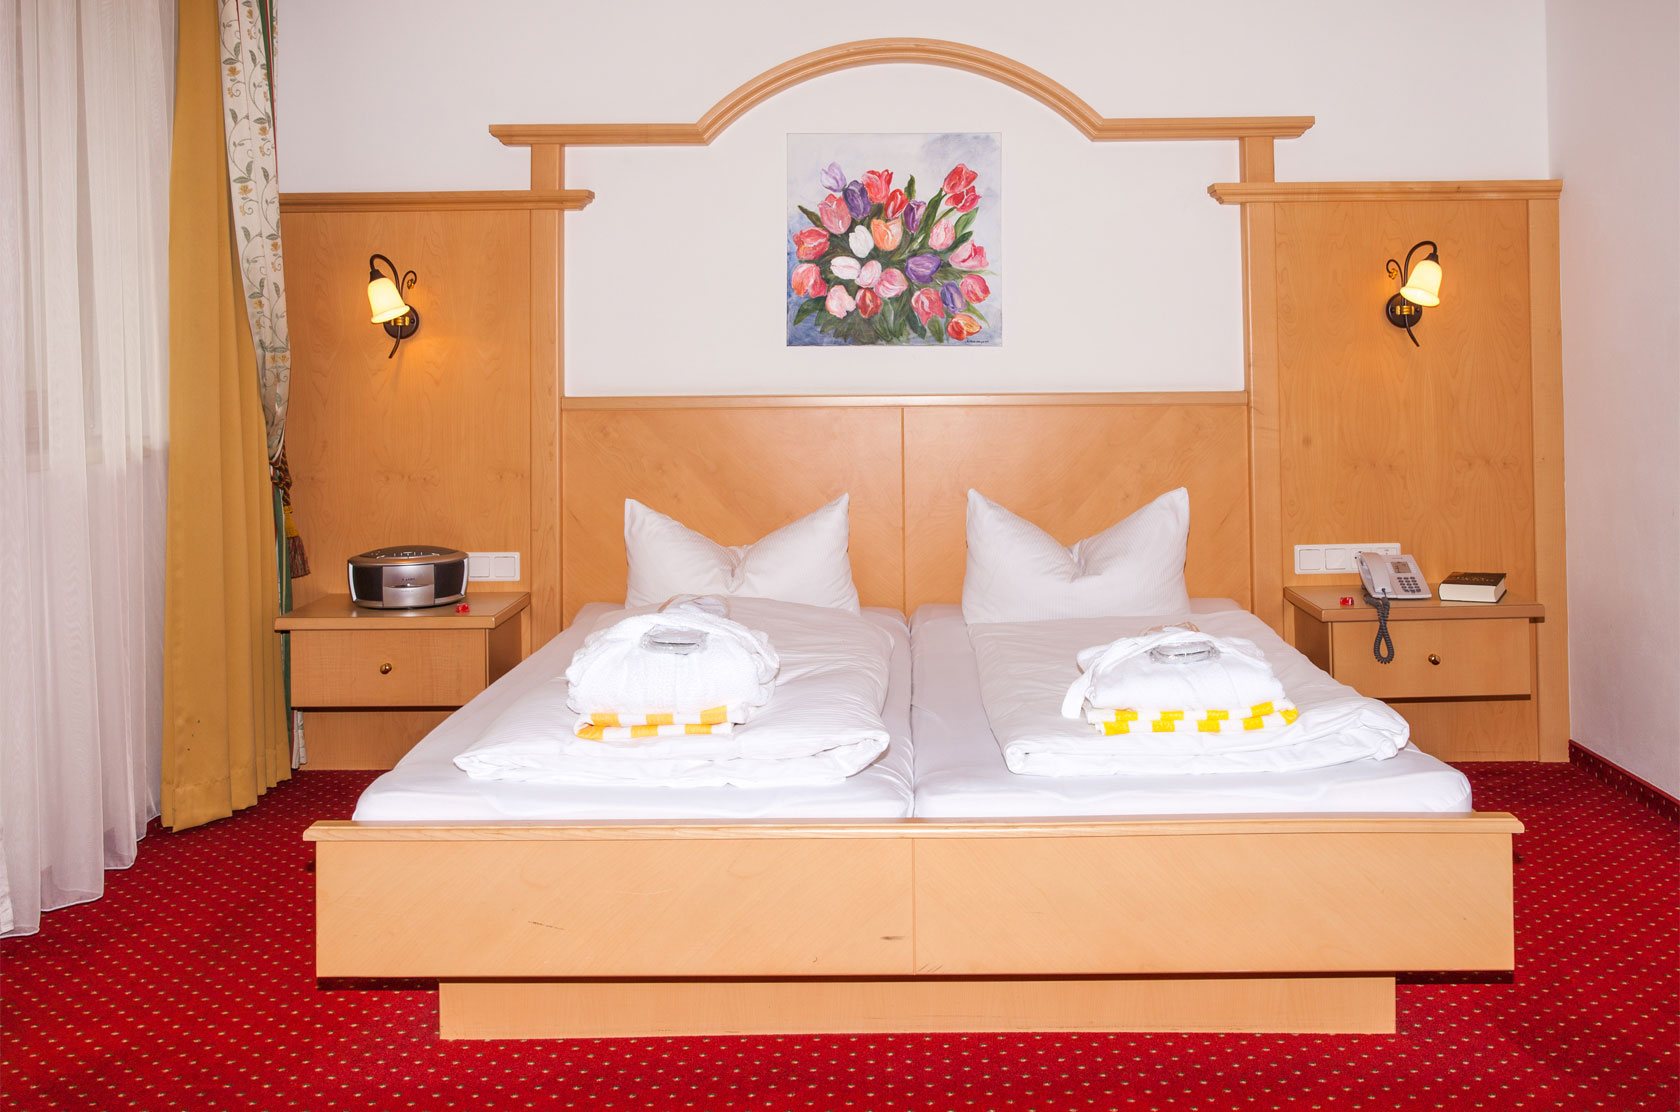 Hotelroom with double bed